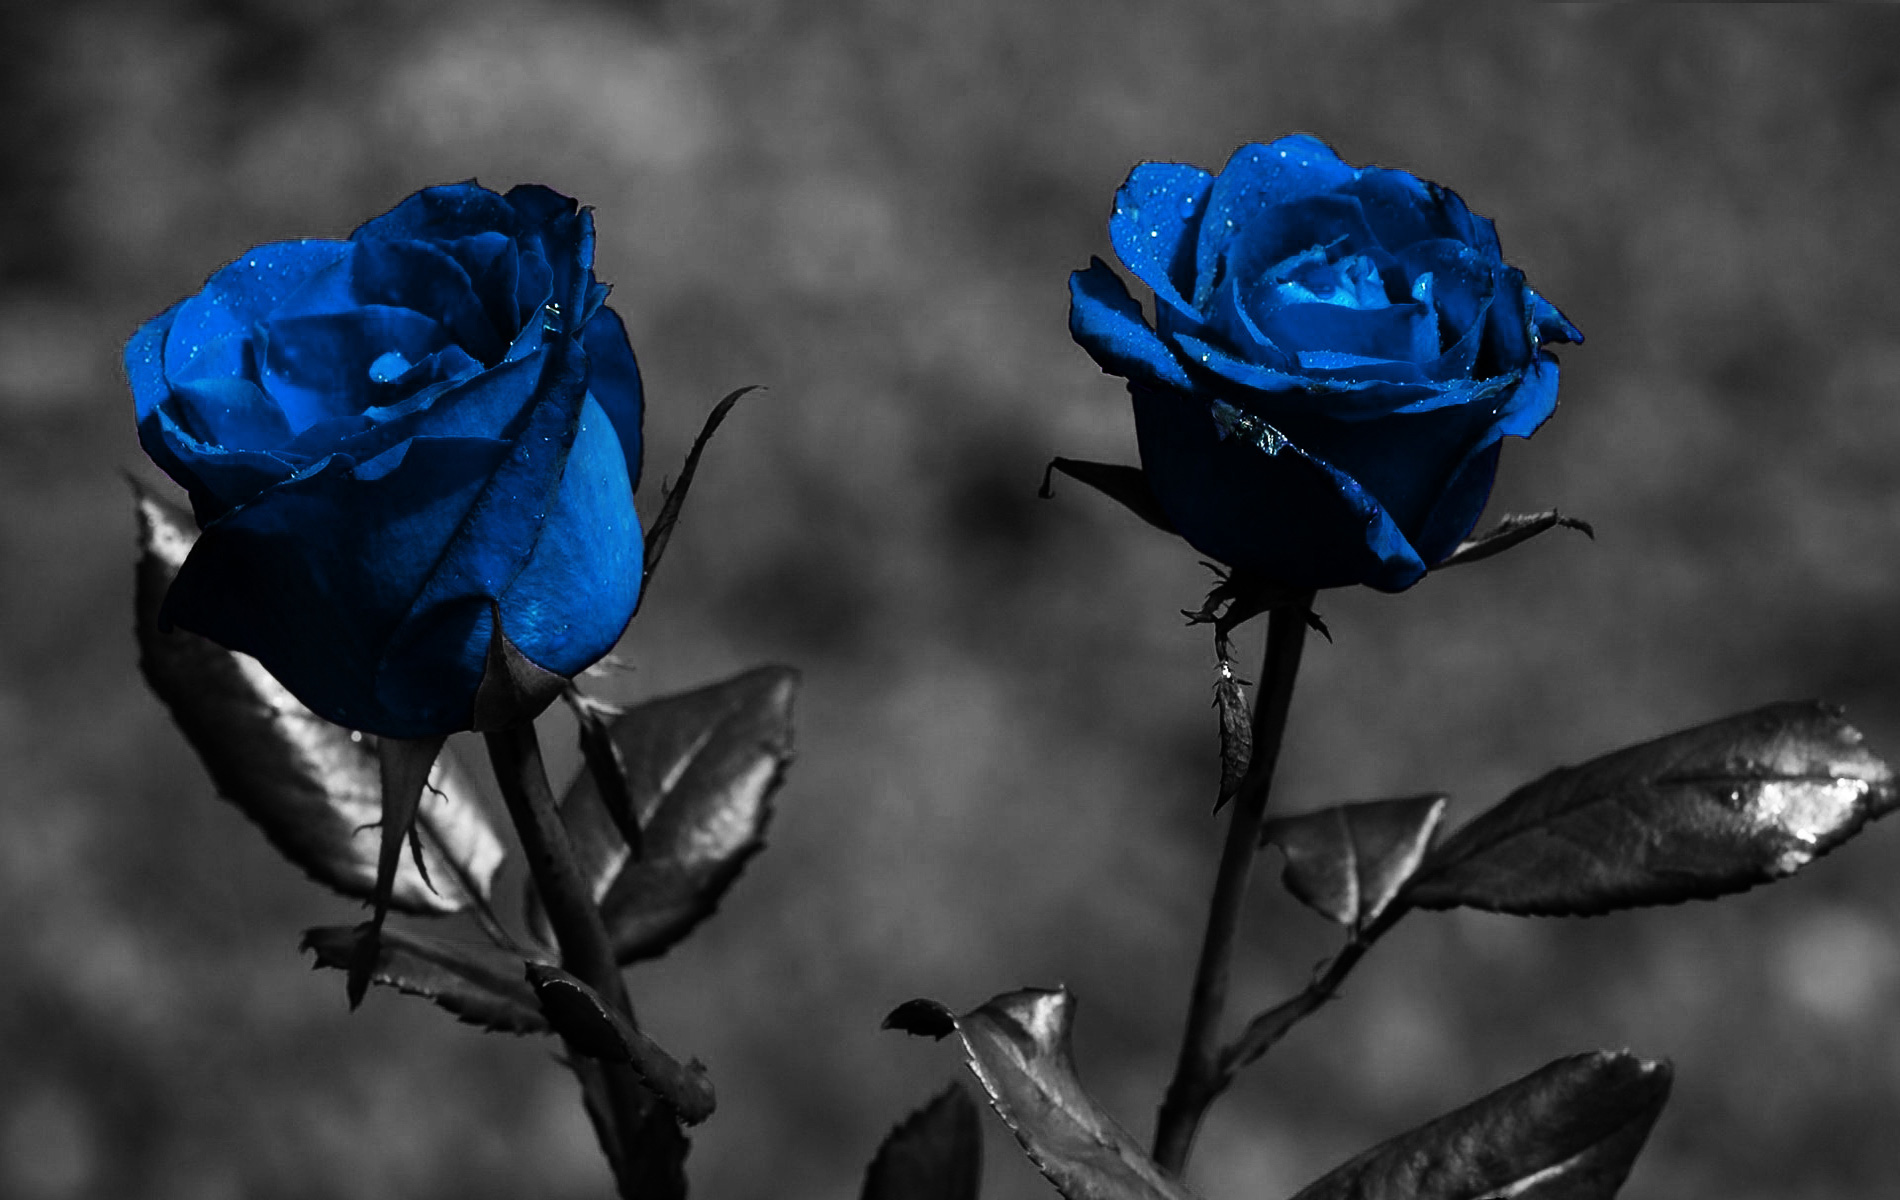 blue_roses_widescreen-other.jpg